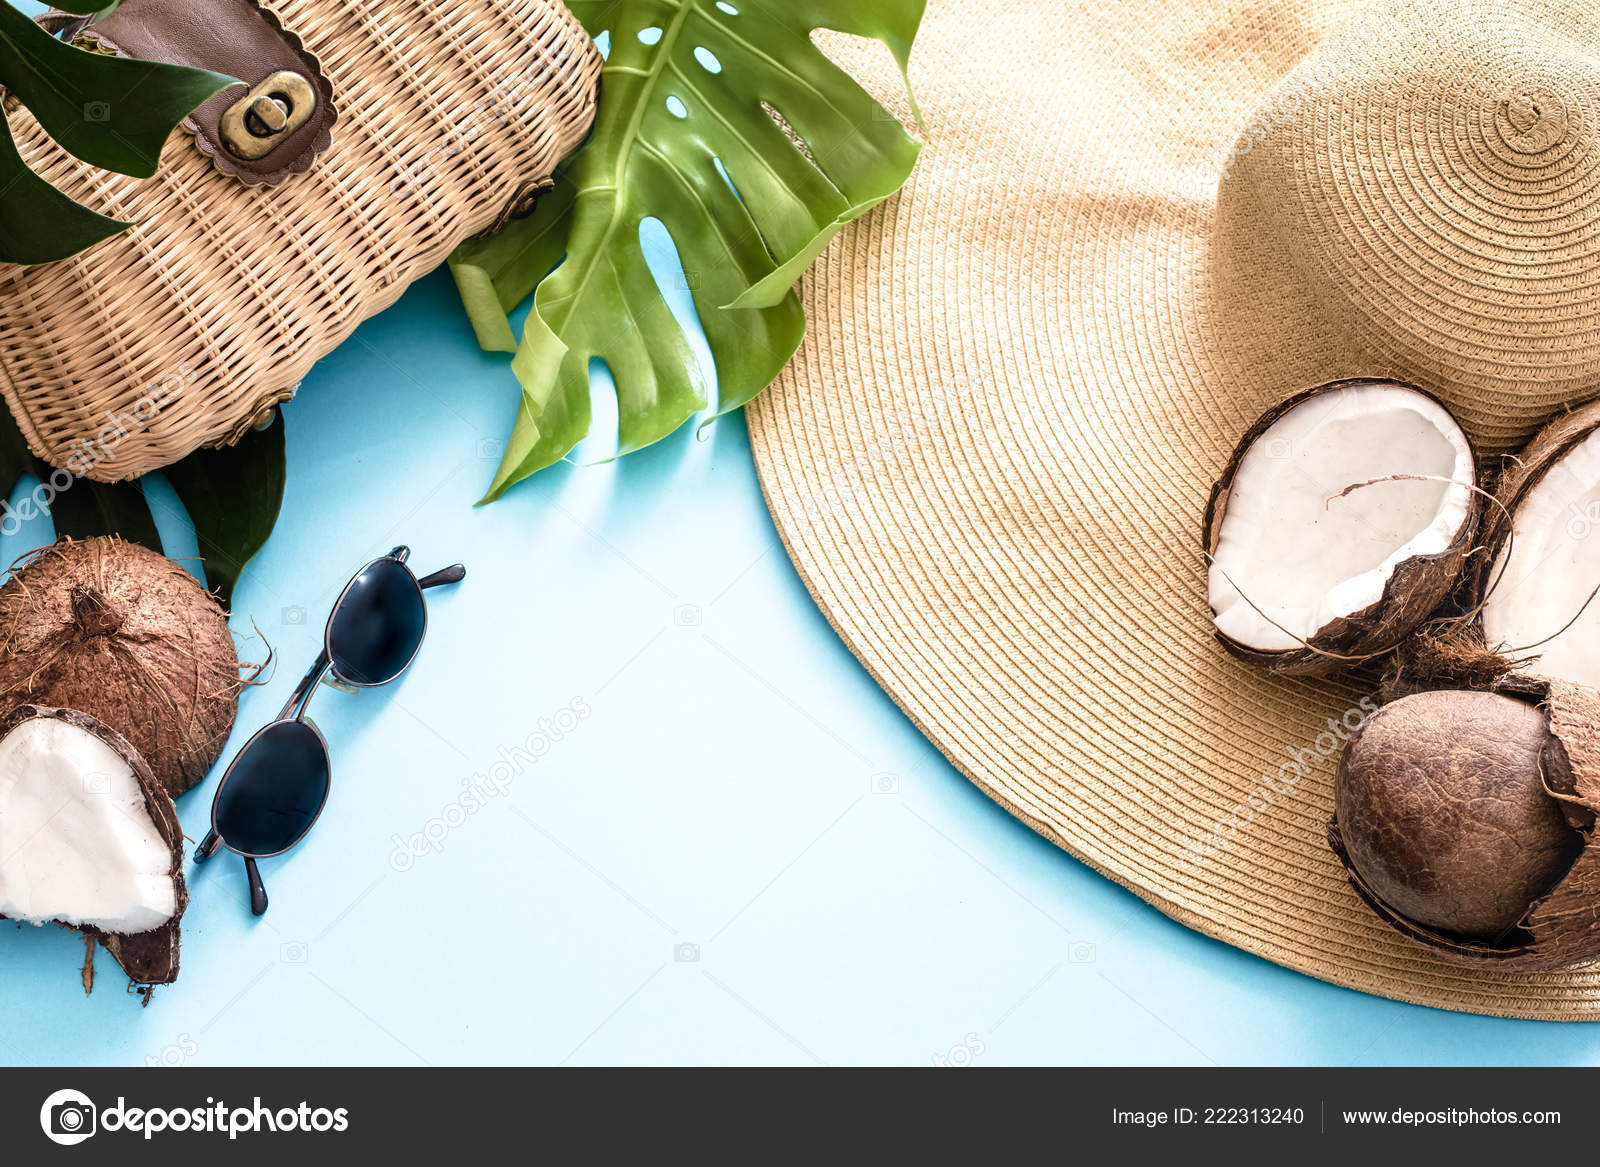 Colorful Summer Coconuts Beach Hat Blue Background Real Tropical Leaves Stock Photo C Puhimec 222313240 Flat lay, top view, and discover more than 6 million professional stock photos on freepik. depositphotos